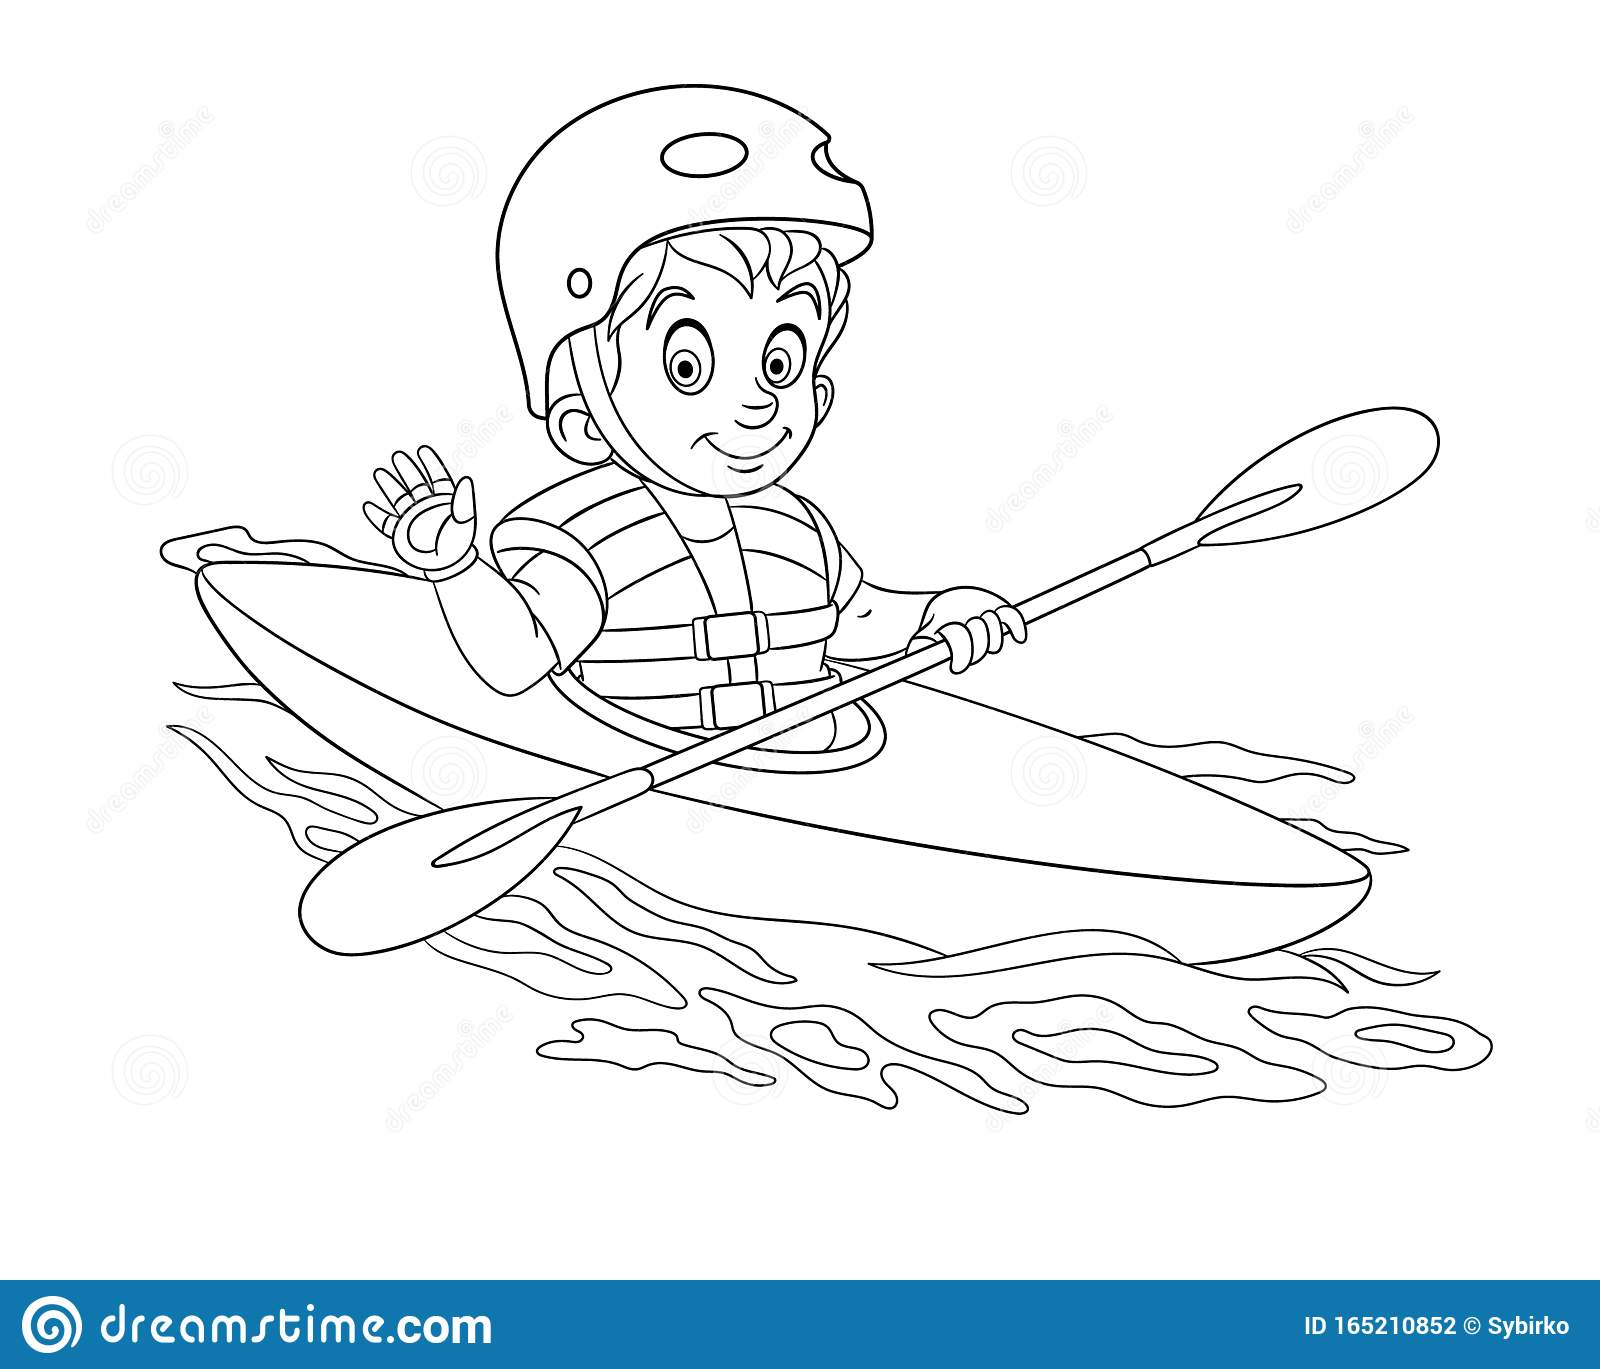 Coloring Page With Boy Canoeing Extreme Sport Kayaking